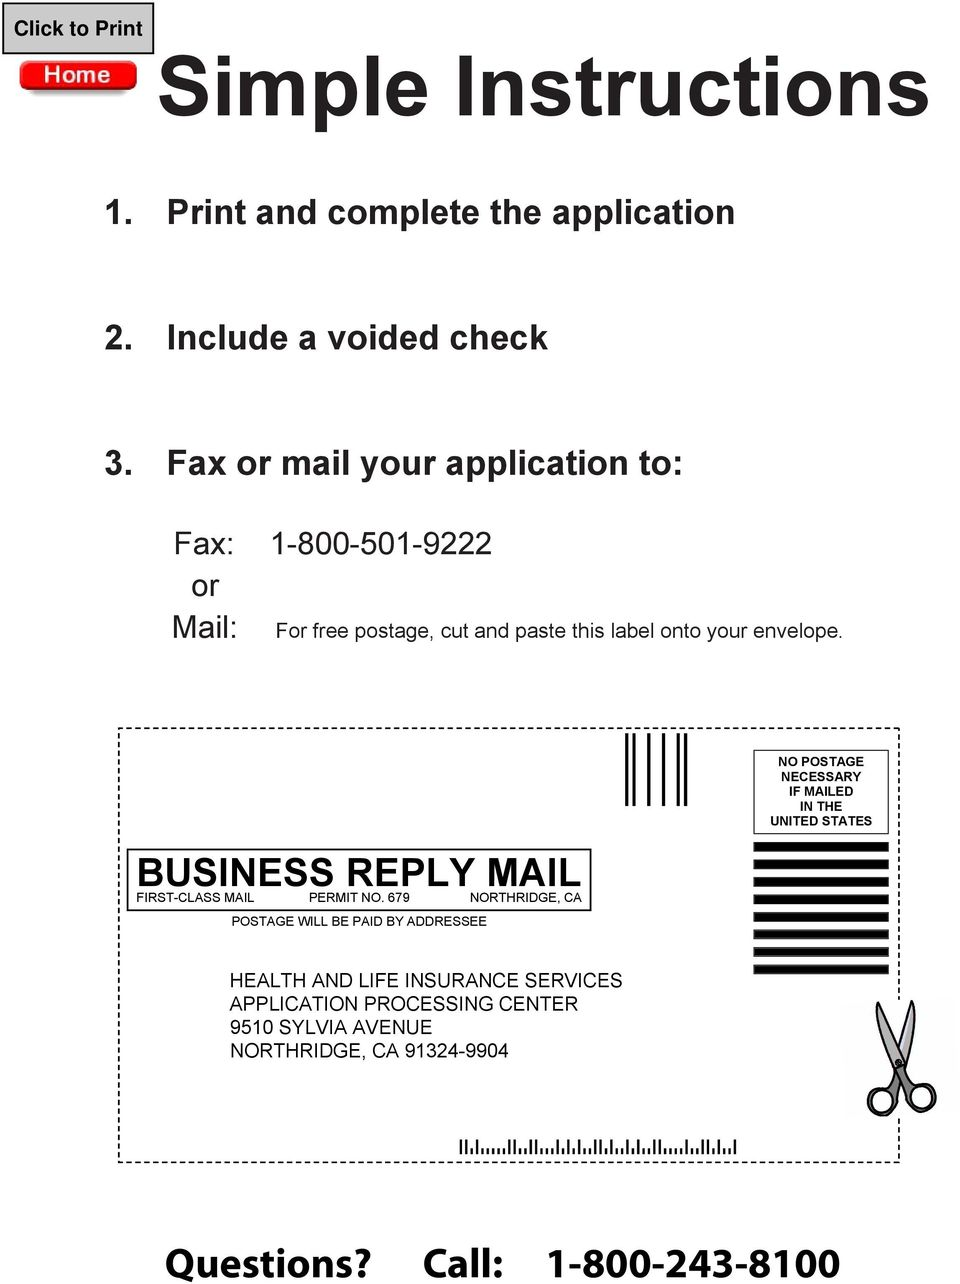 BUSINESS REPLY MAIL FIRST-CLASS MAIL PERMIT NO.